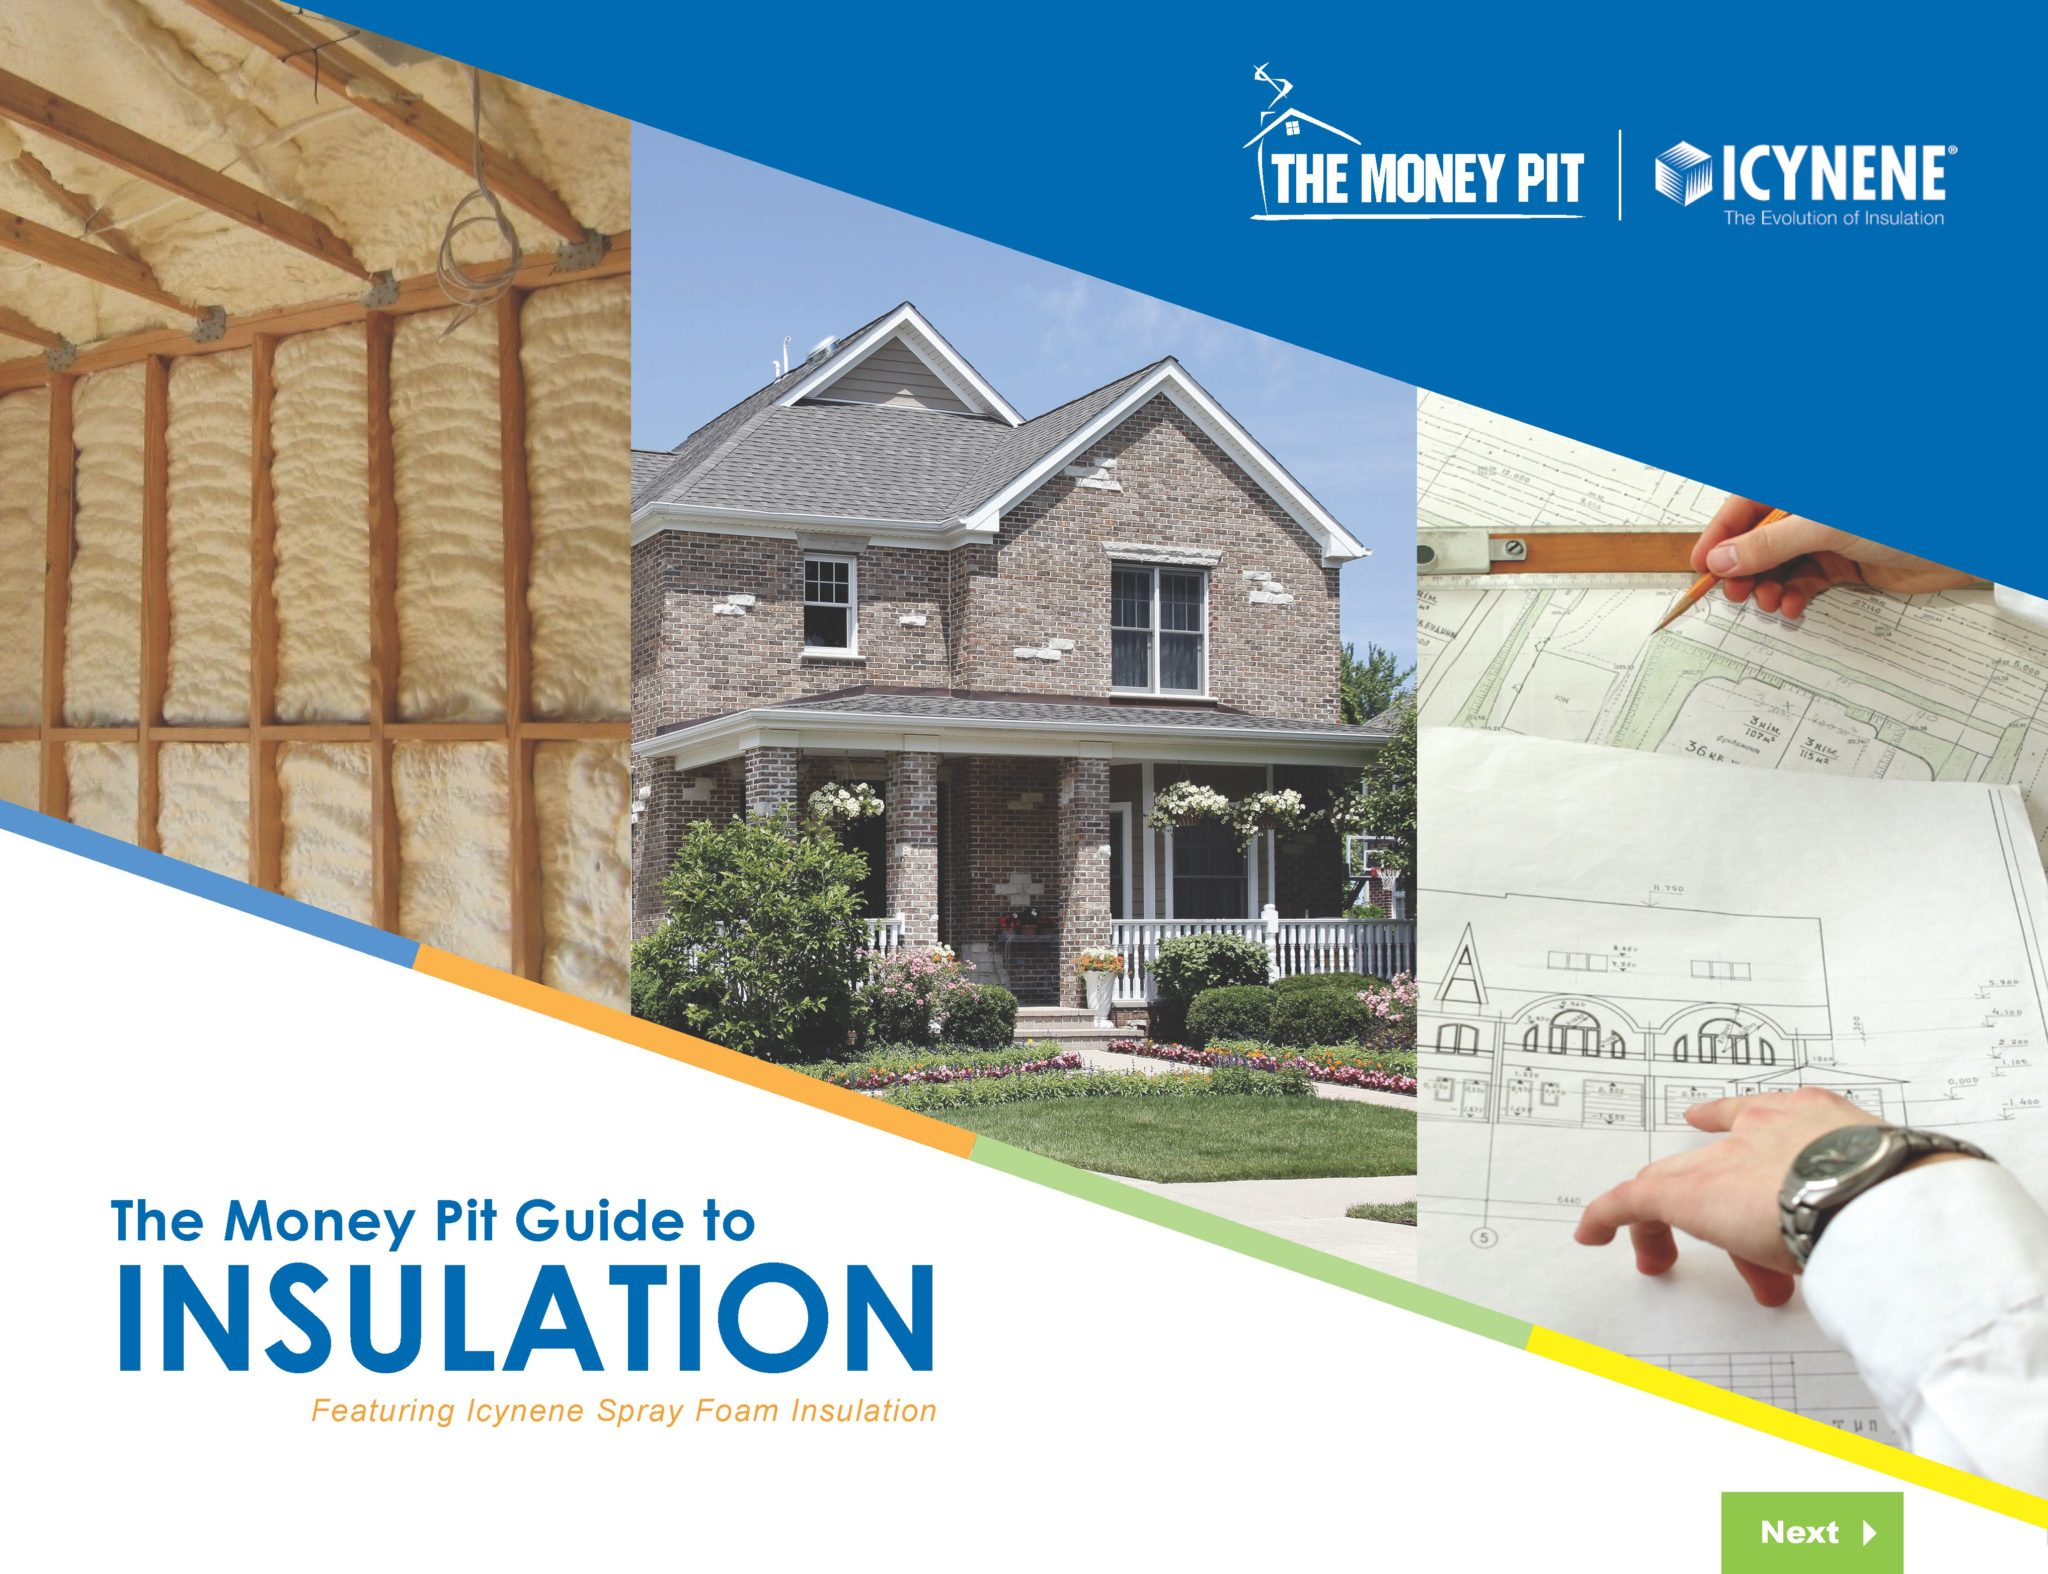 The money pit guide to home insulation the money pit adding home insulation is the single most cost effective way to reduce home heating costs in winter and cooling costs in summer solutioingenieria Gallery